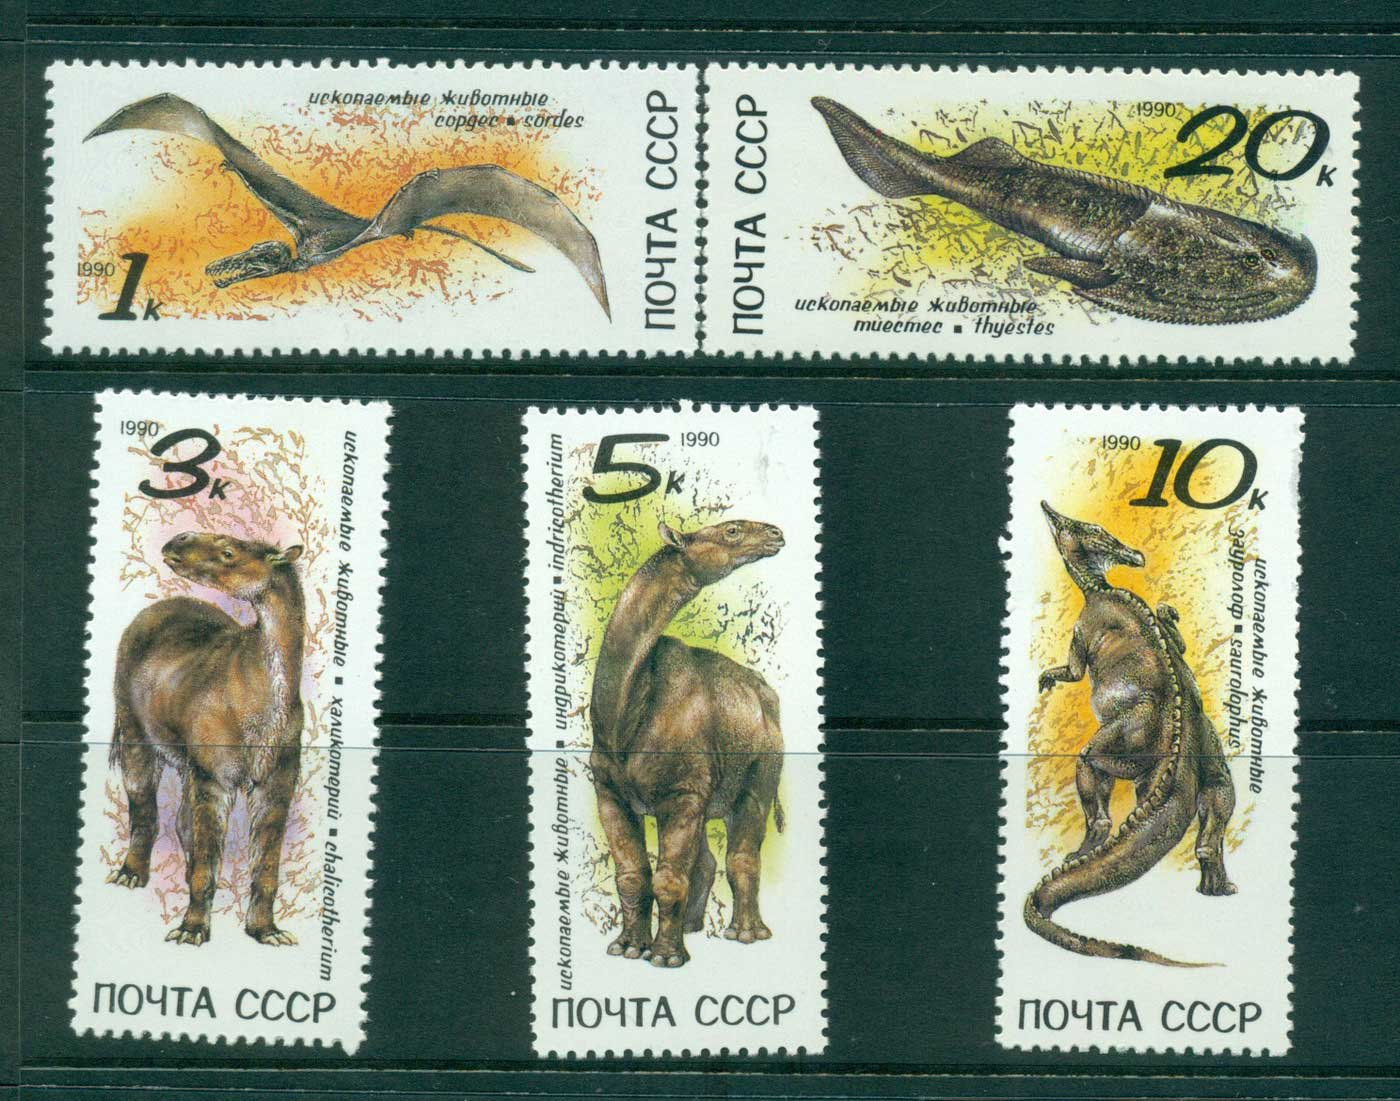 Russia 1990 Prehistoric Animals MUH lot42488